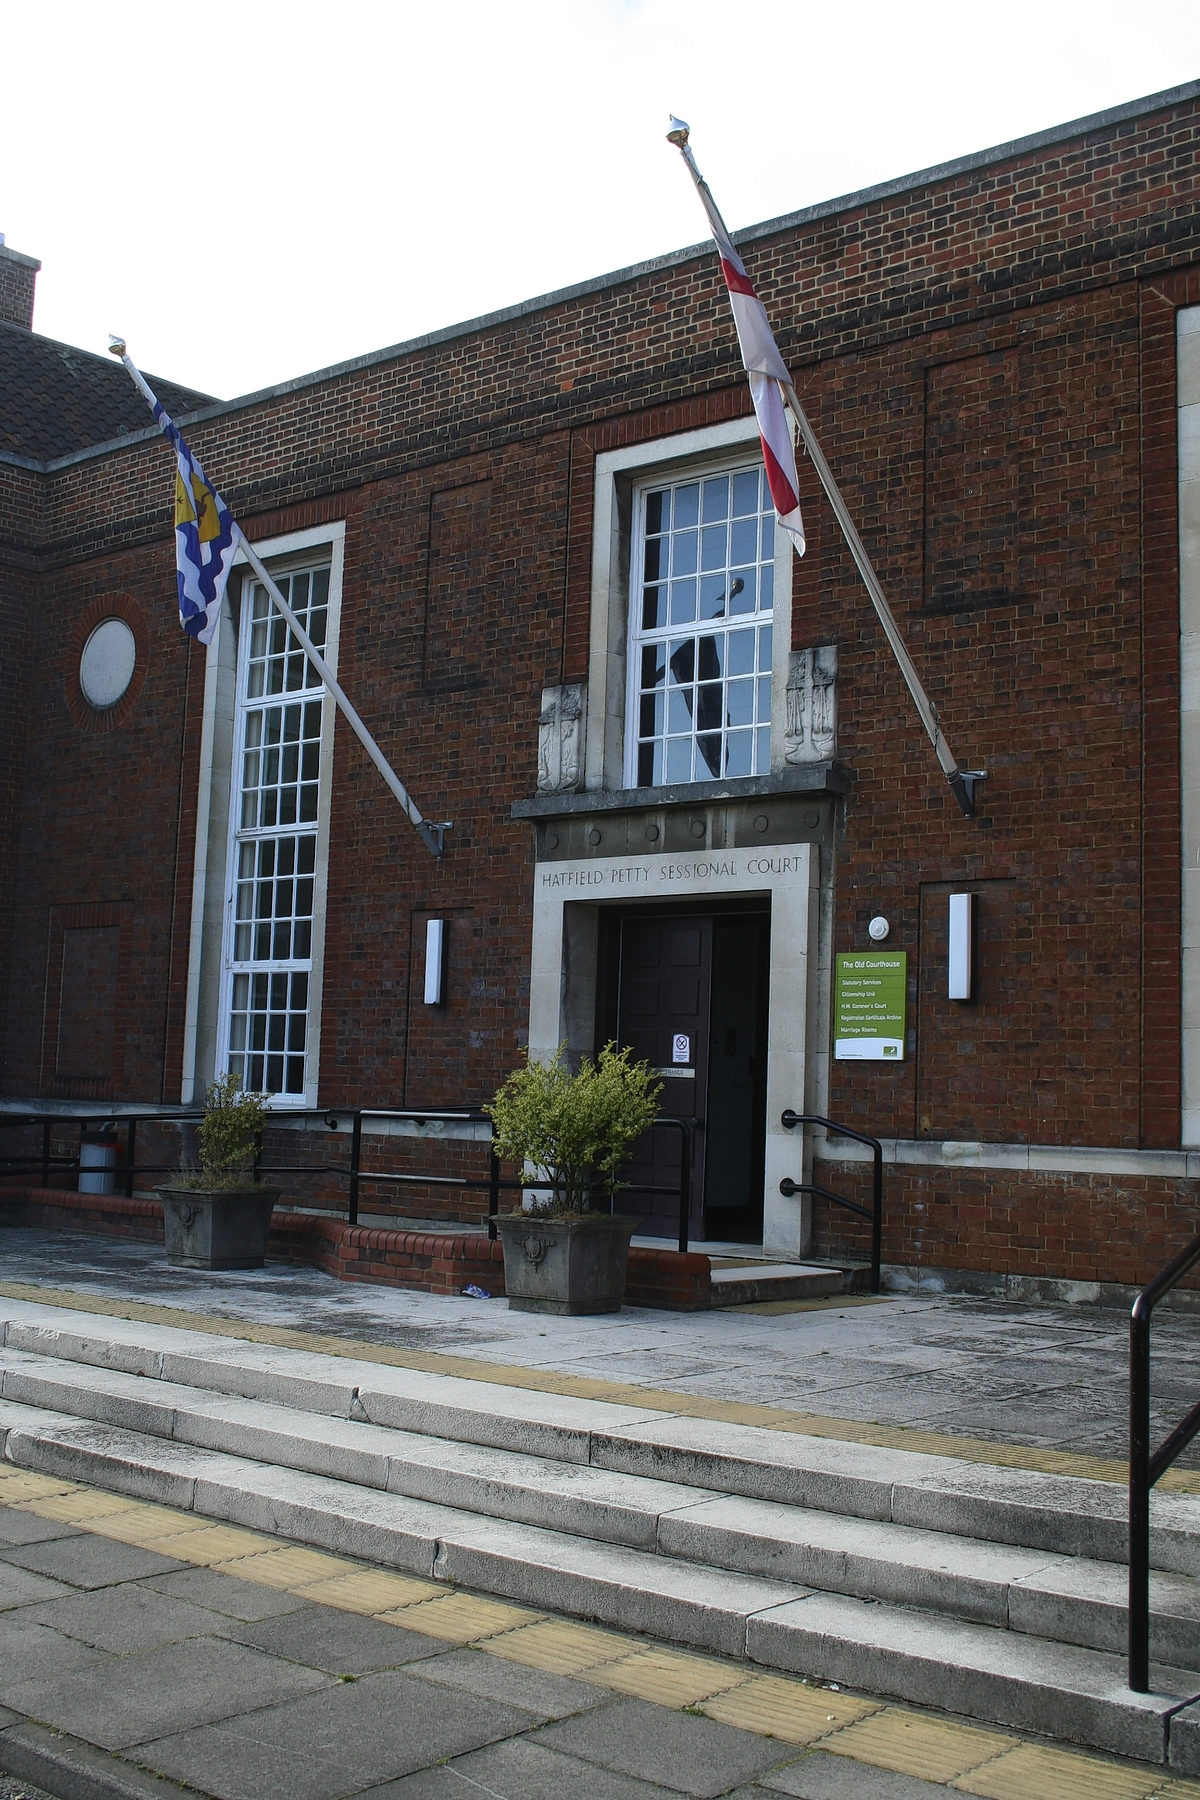 Avril Gillian Solomans, of Whitehouse Avenue, Borehamwood, died in Barnet hospital on May 23 after suffering a severe head injury.